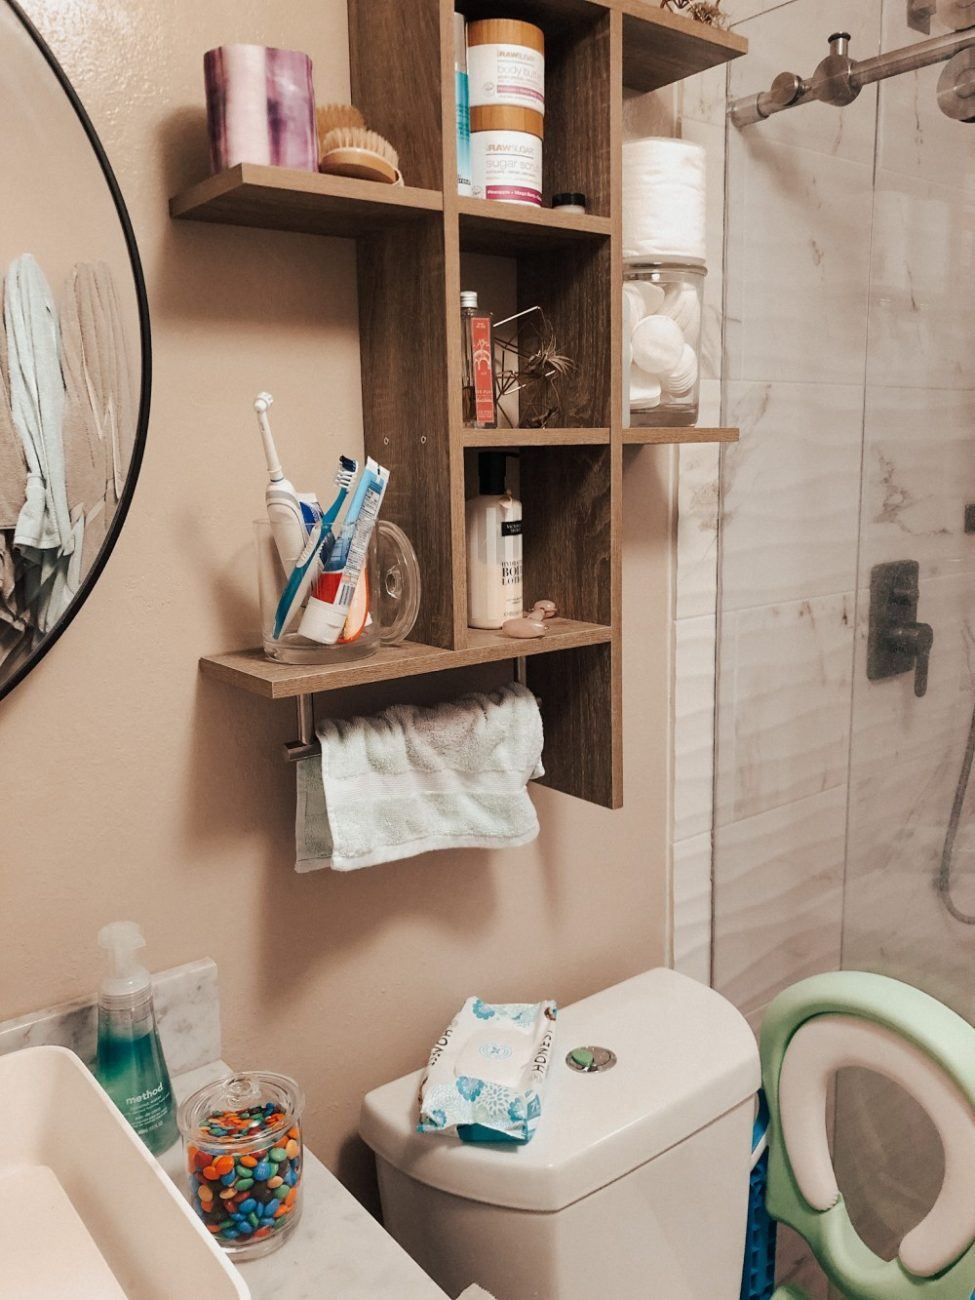 Apothecary jars are great for storing small bathroom essentials like qtips and cotton balls or m&ms if you're potty training like we are. Head to the post to check out the other top 20 storage solutions I use to keep my house looking as decluttered as possible. #homeorganization #ApothecaryJars #bathroomorganization